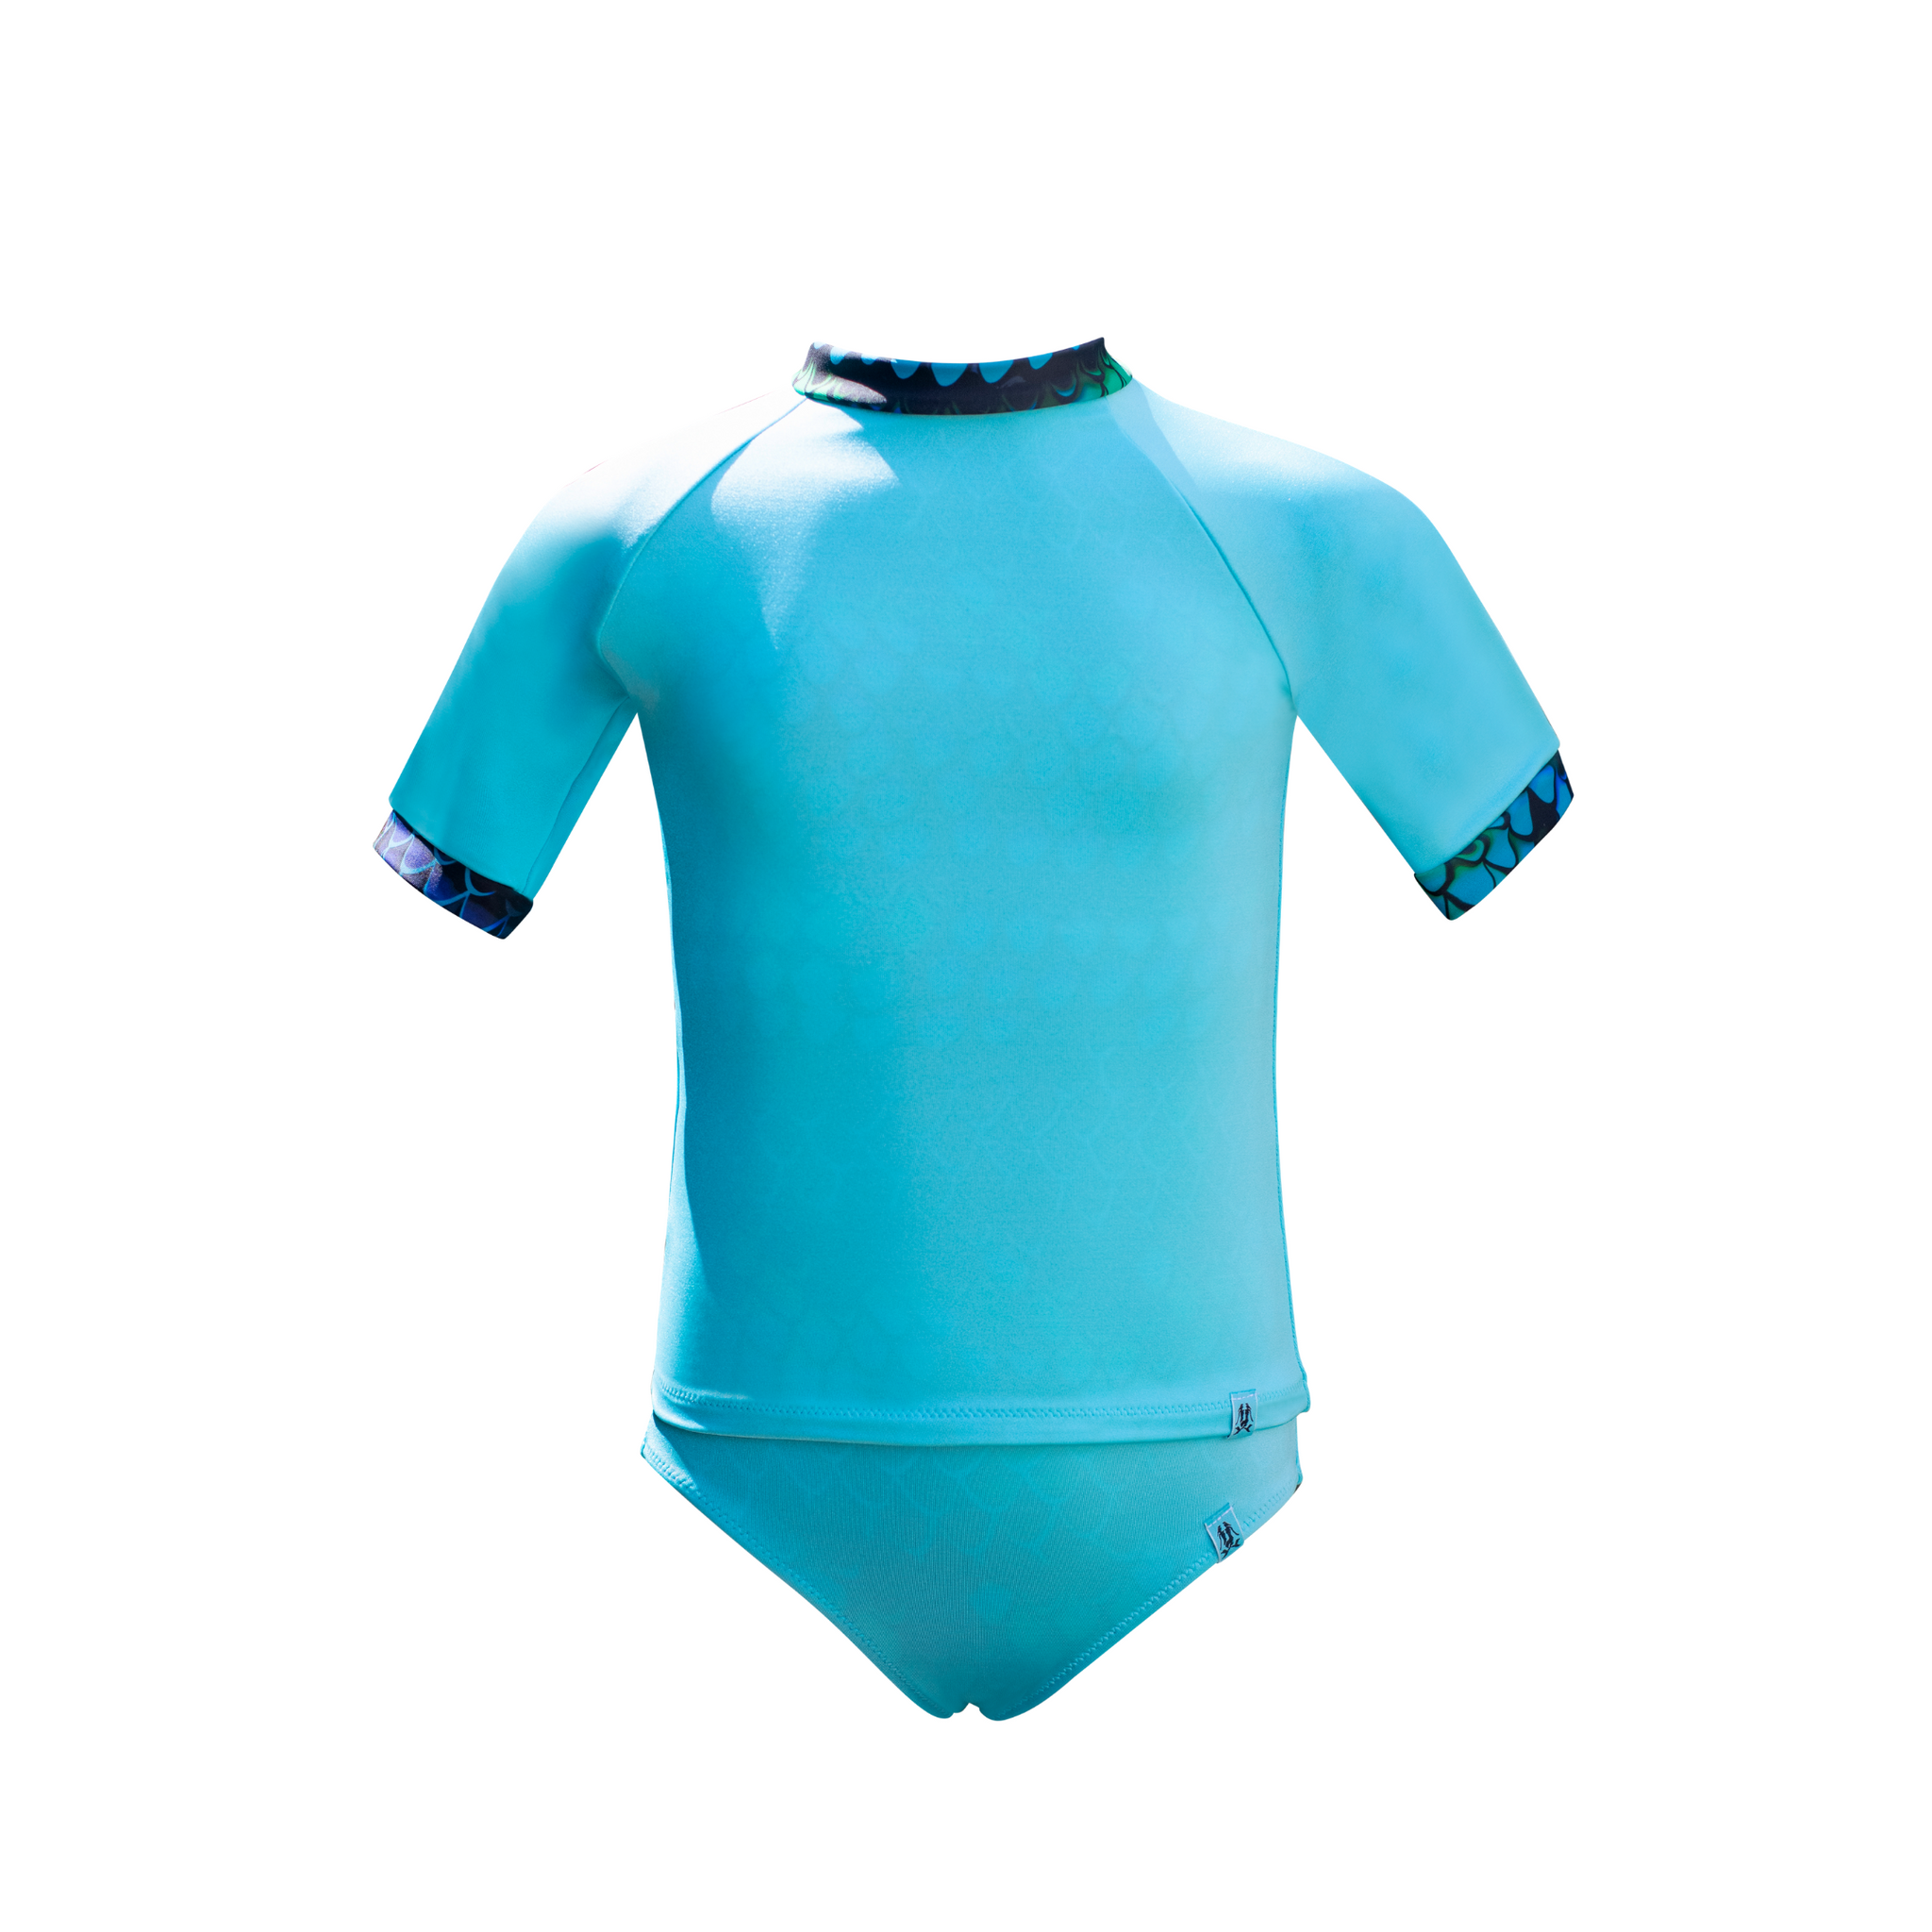 This Mermaid In England children's rash vest is a necessity in the sun. Providing excellent sun protection the swim top is aqua blue, short sleeved but longer in the body to ensure coverage. Ethically made in Great Britain, the rash vest reveals a mermaid scale design when in water. We call this magic colour change swimwear.